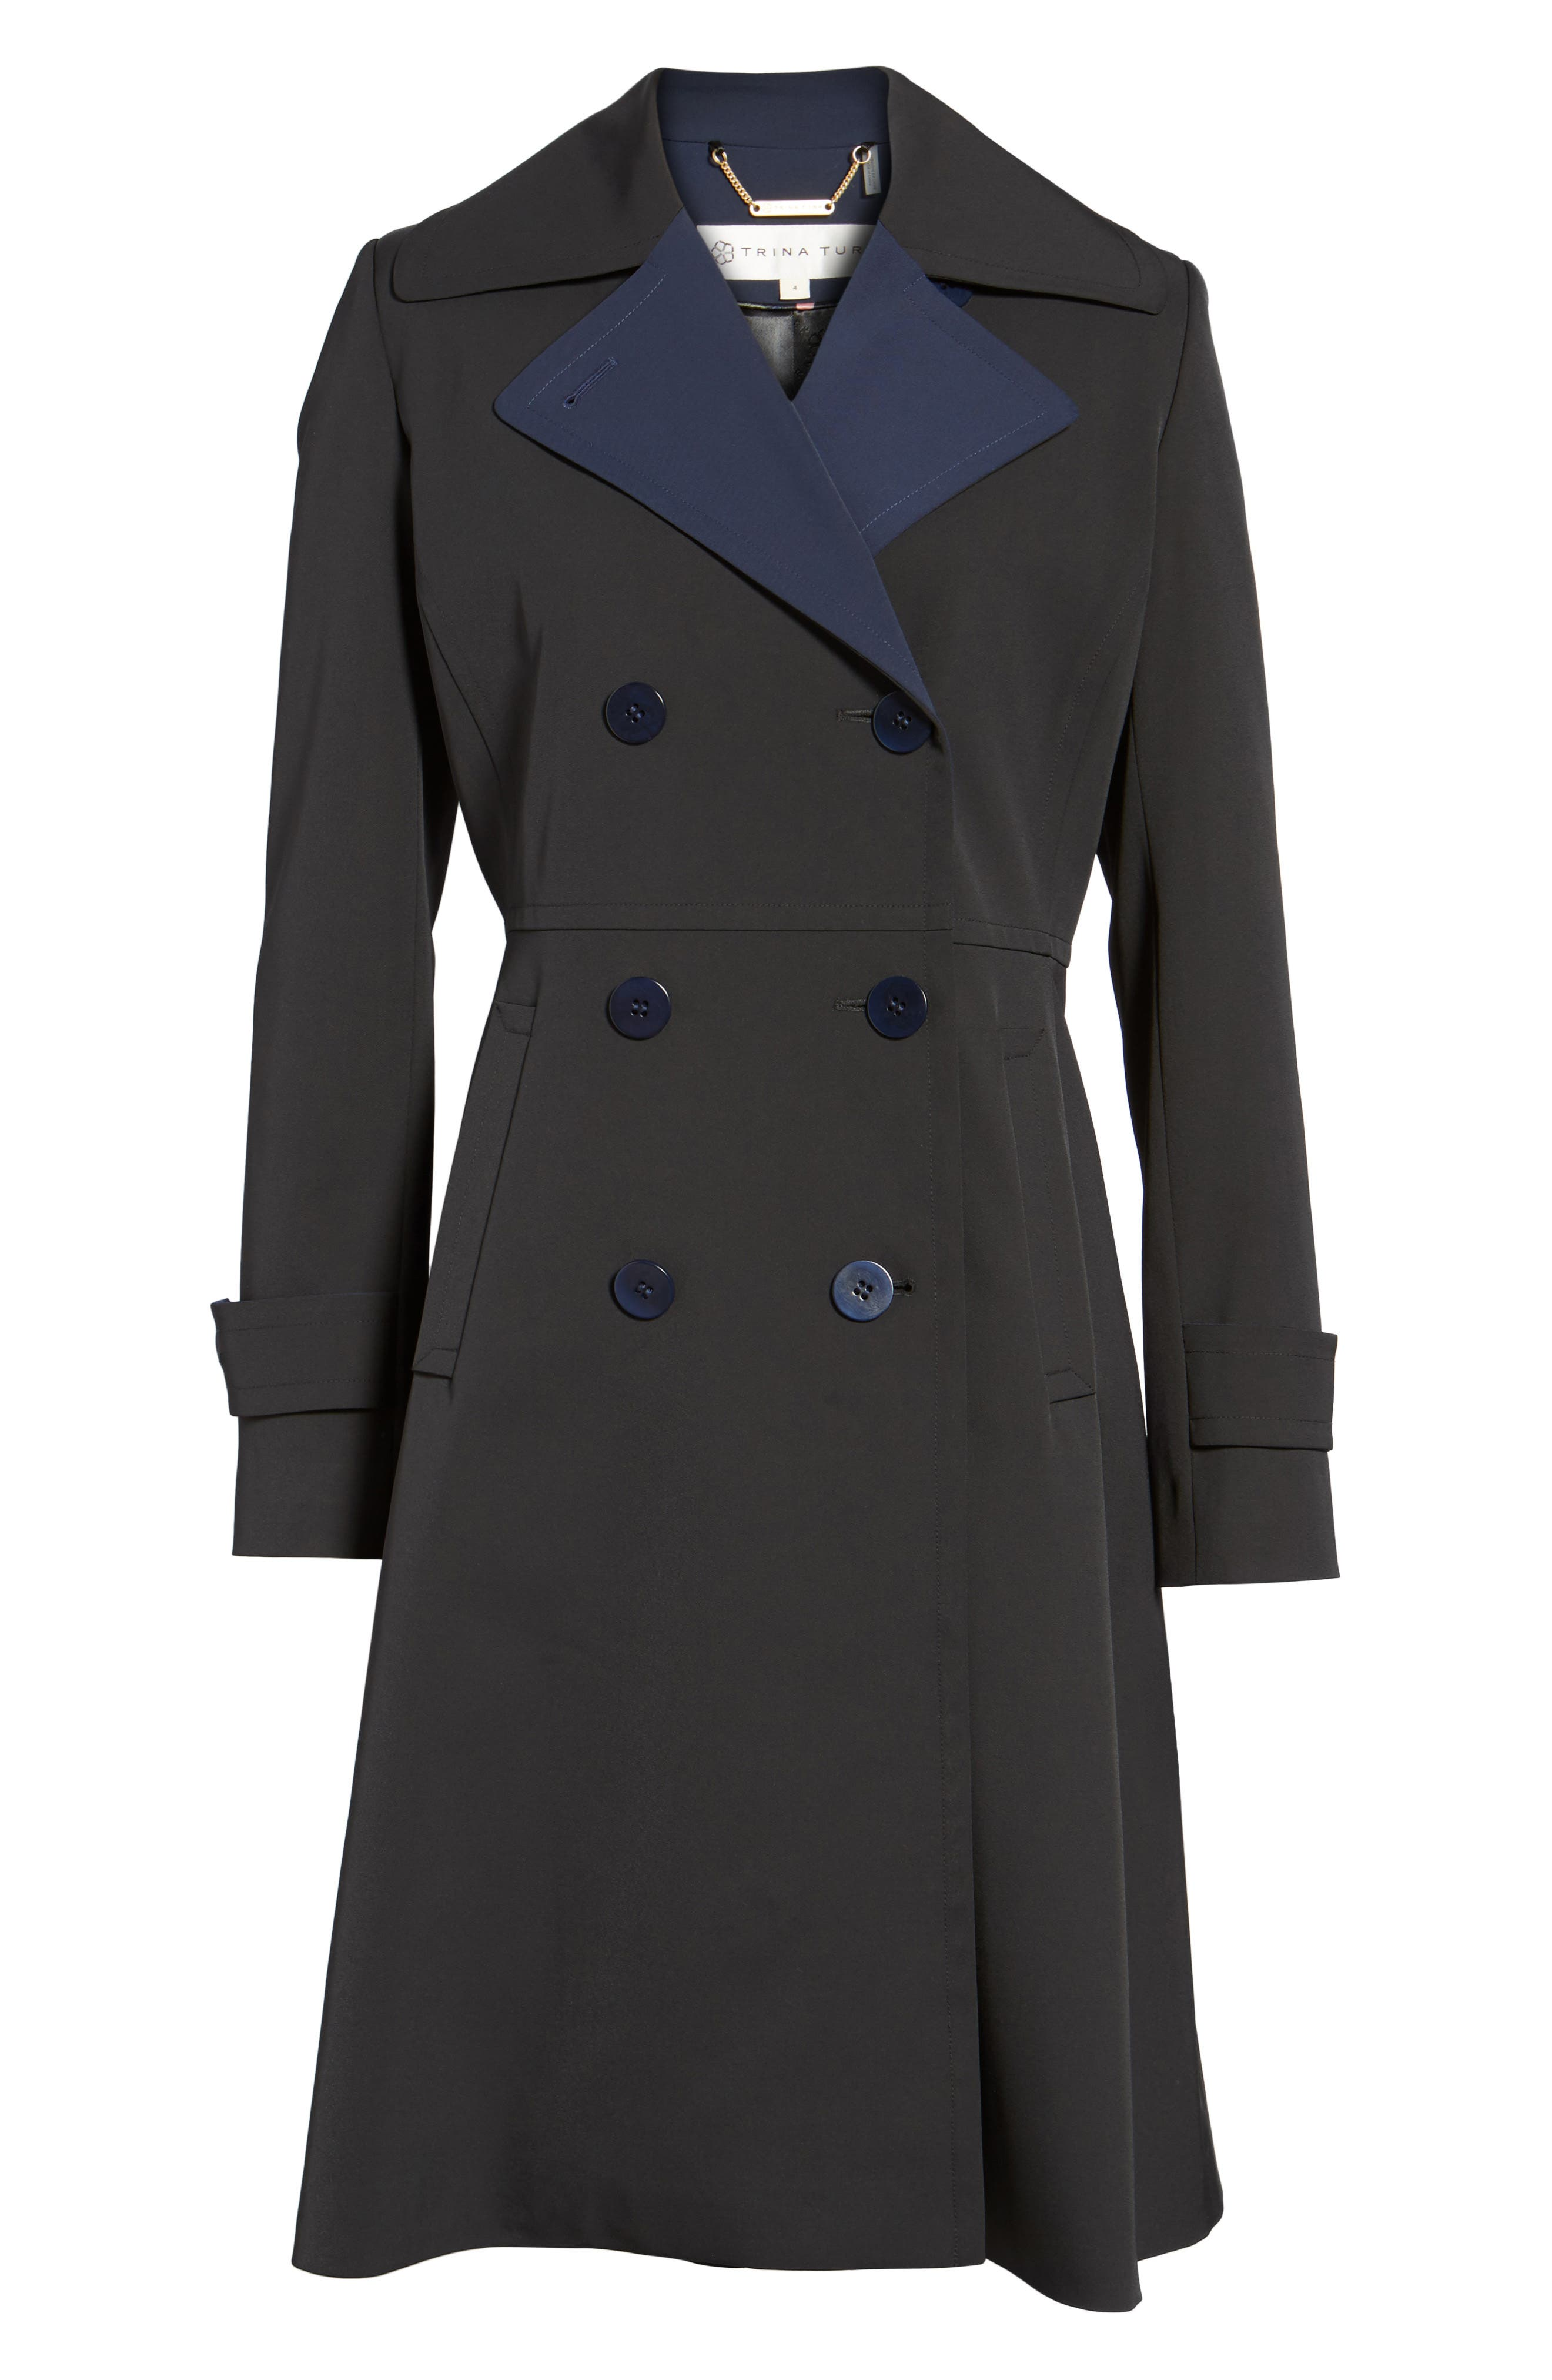 Isabella Two-Tone Double Breasted Trench Raincoat,                             Alternate thumbnail 6, color,                             Black/ Navy